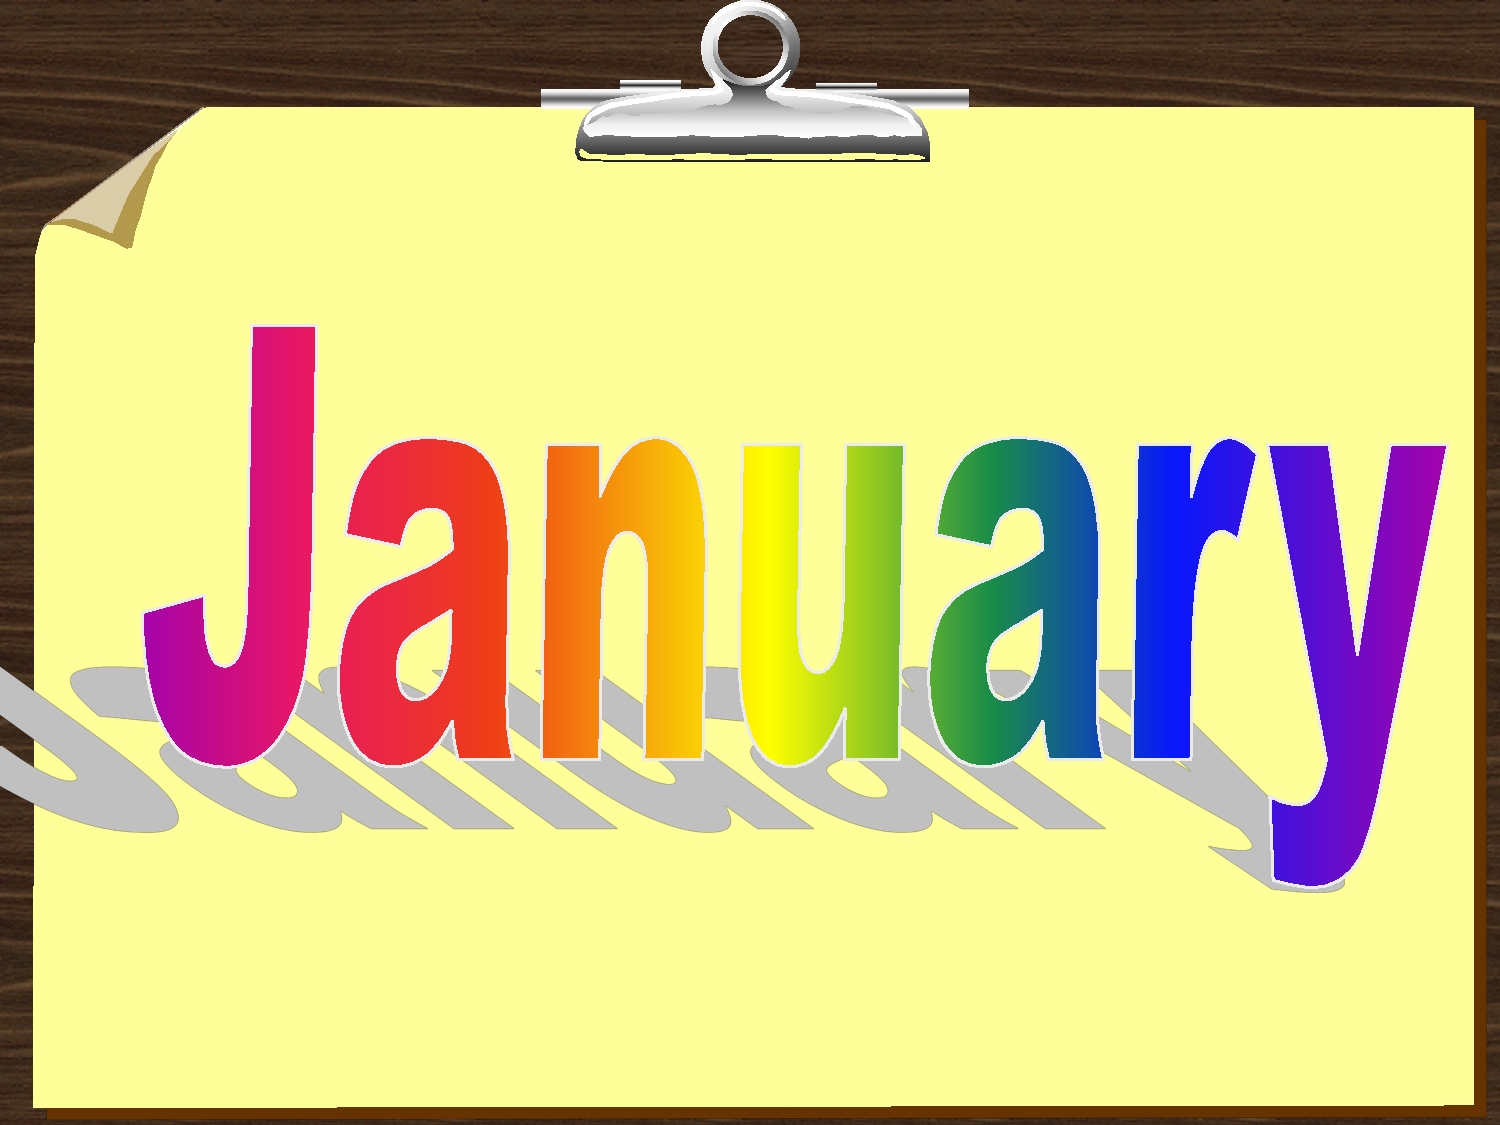 Months of the Year - ClipArt Best - ClipArt Best